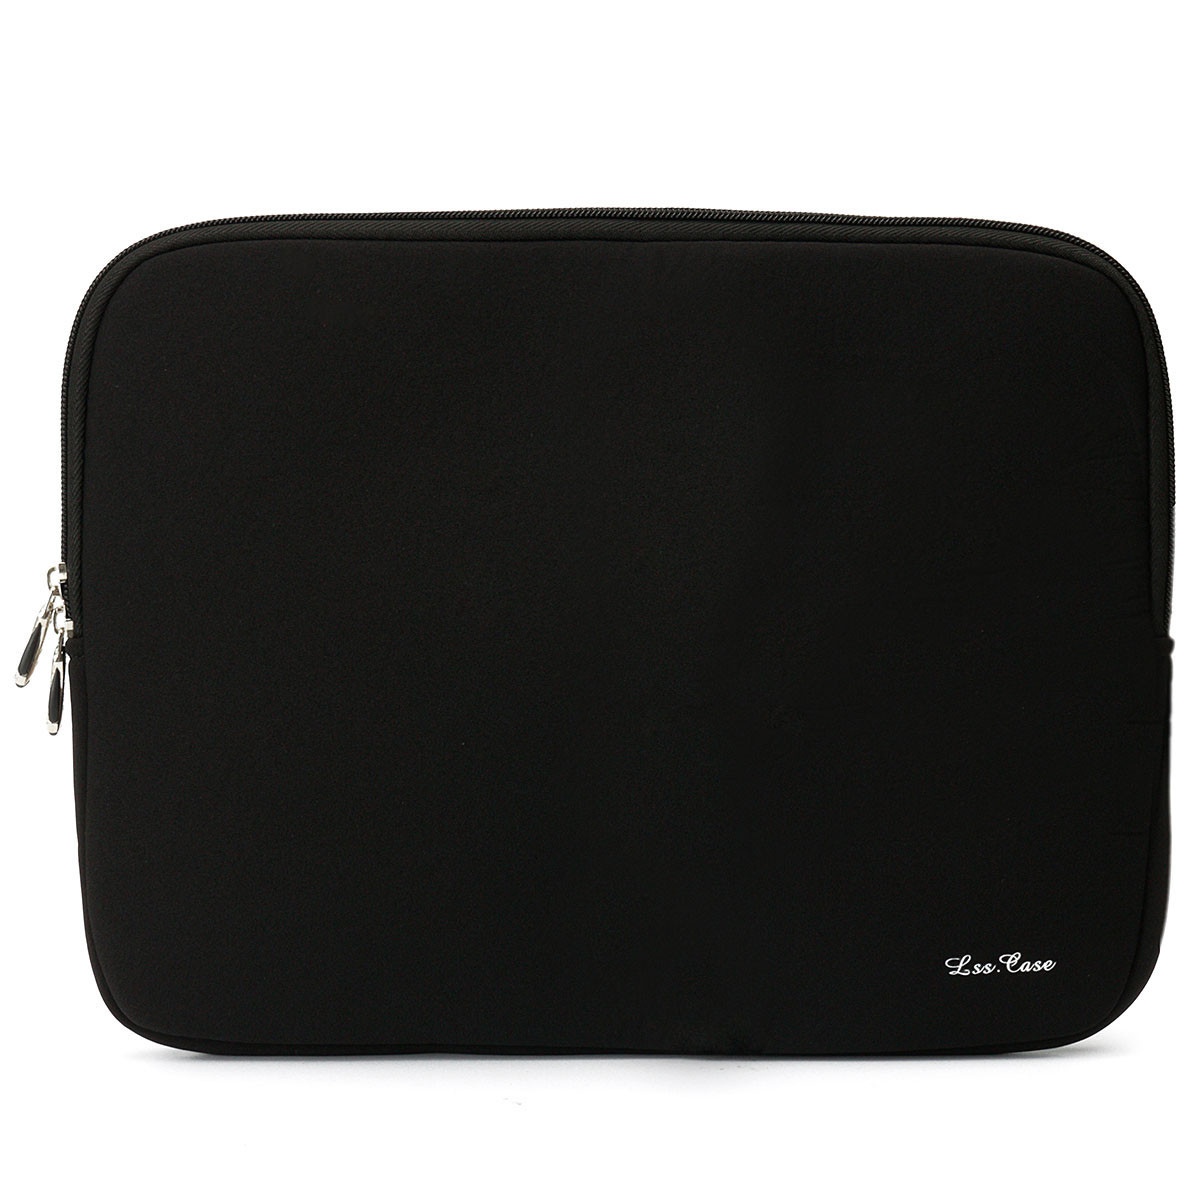 Laptop Notebook Soft Case Bag Carry Sleeve Pouch For Macbook Air Pro Softcase 12 Inch Zipper Retina 13 Ultrabook